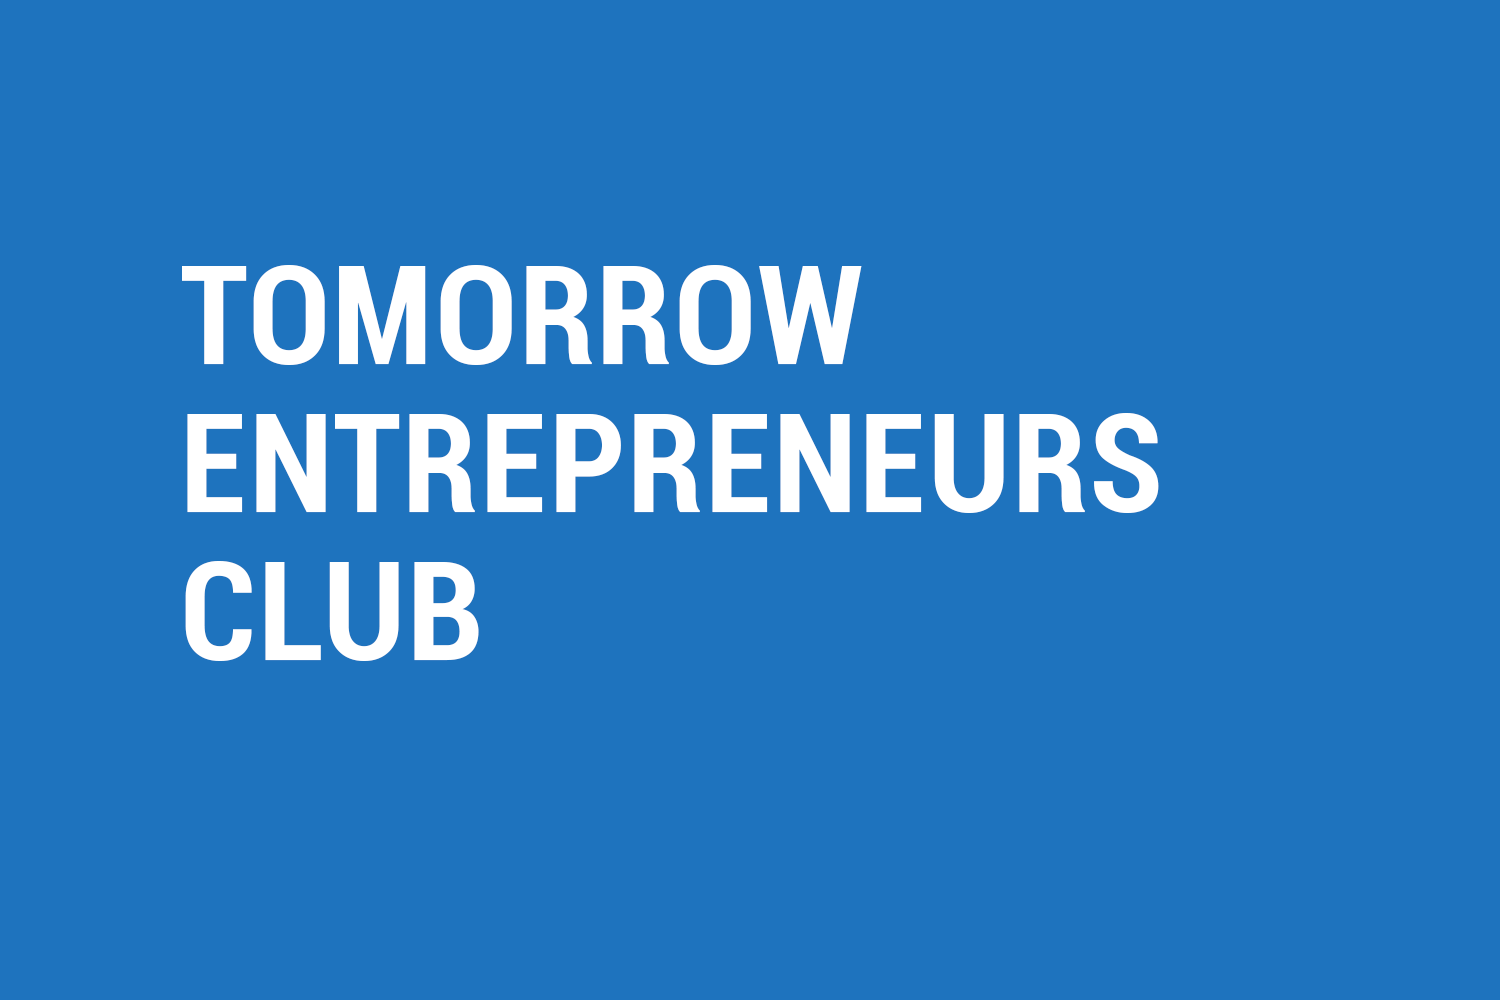 tomorrow entrepreneurs club